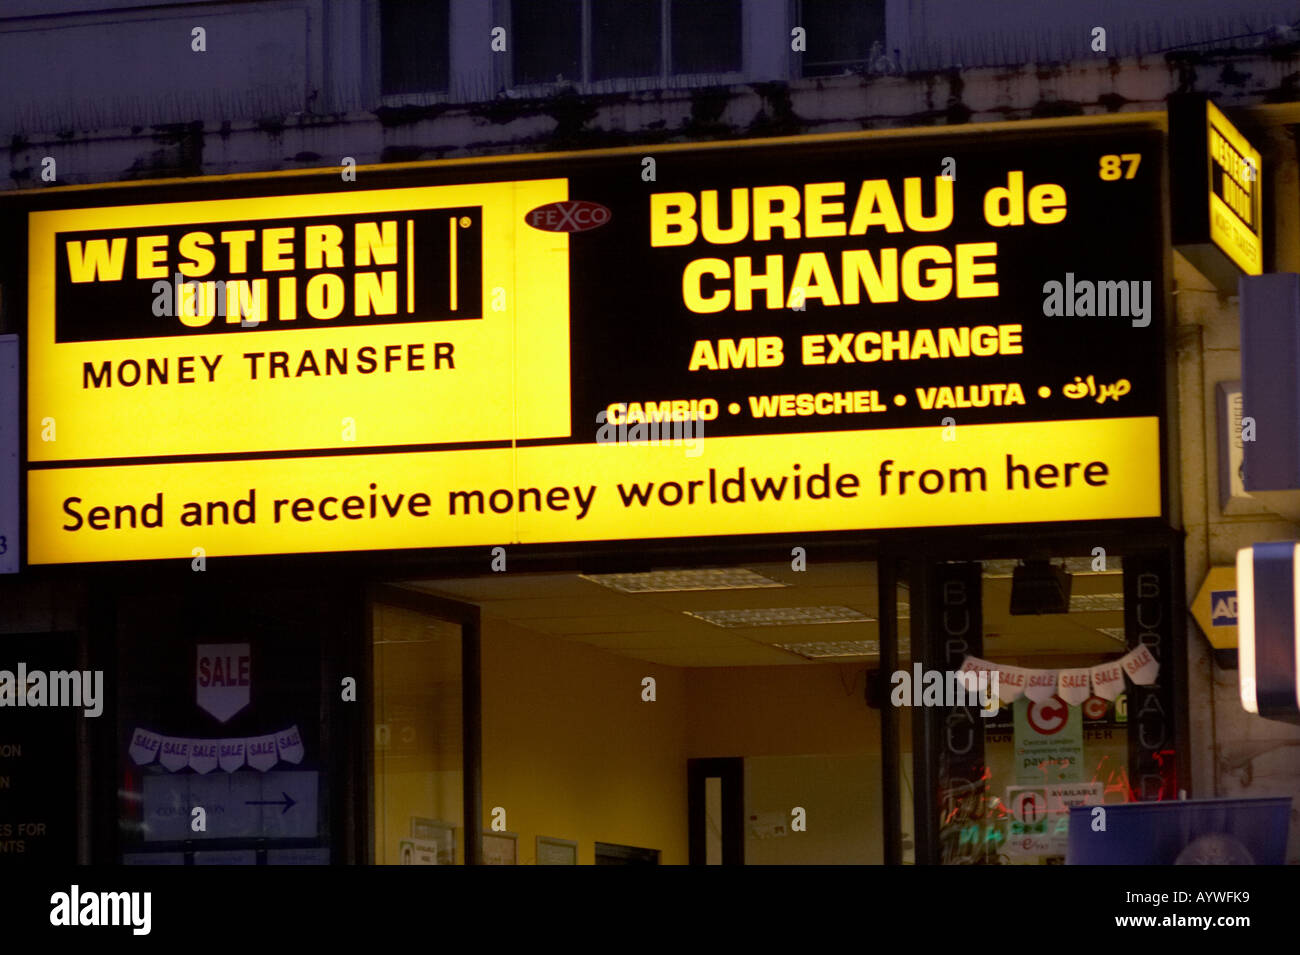 western union bureau de change 28 images western union money transfer bureau de change in uk. Black Bedroom Furniture Sets. Home Design Ideas